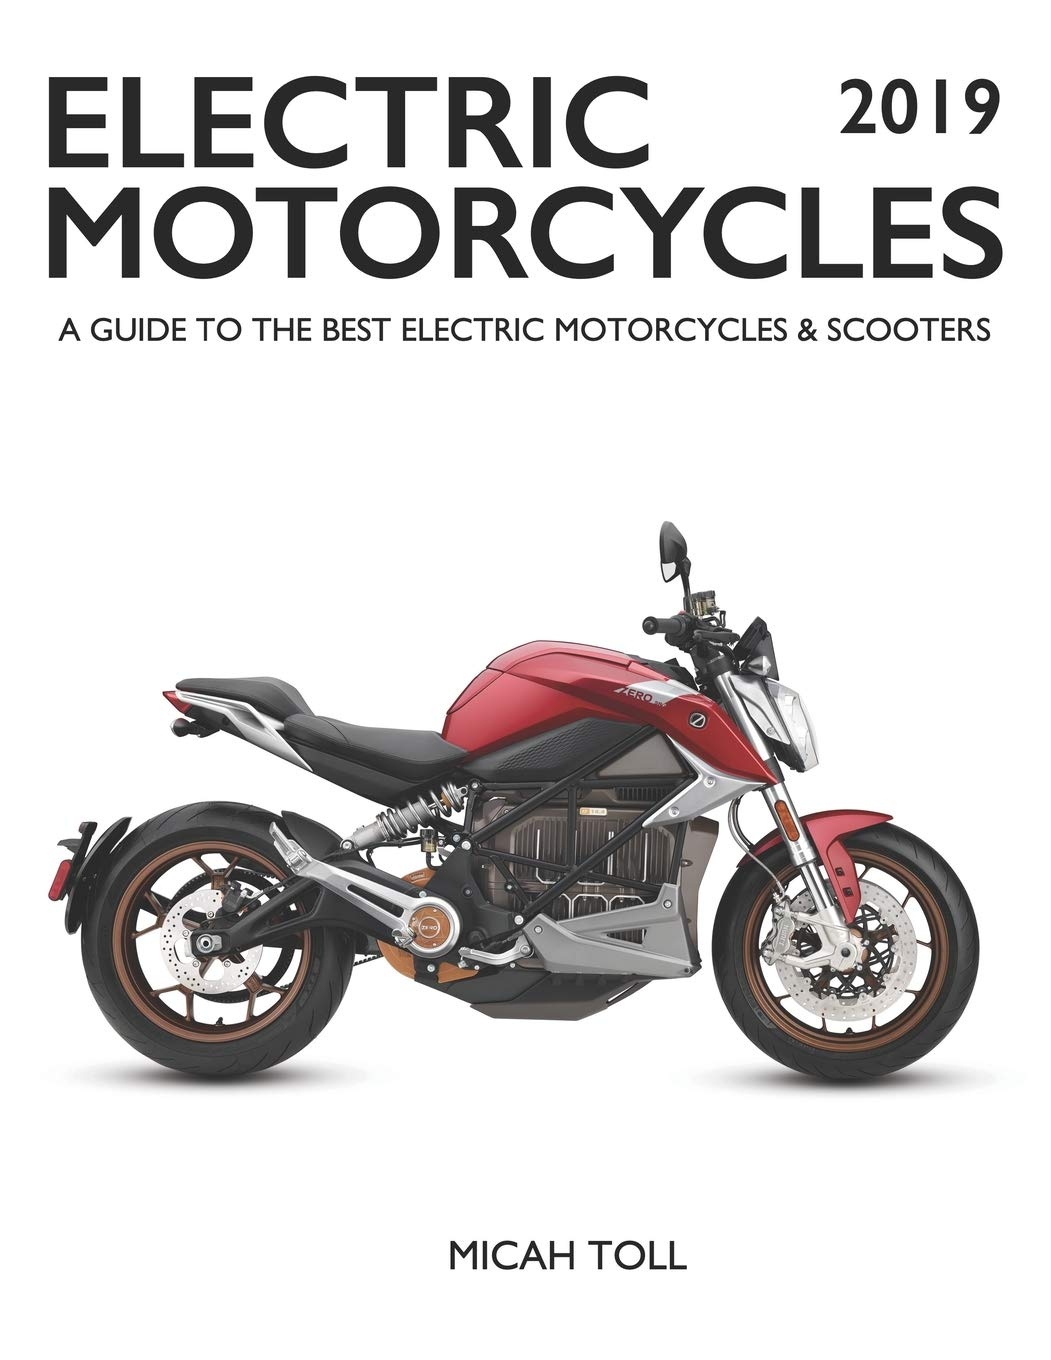 Electric Motorcycles 2019: A Guide to the Best Electric Motorcycles and Scooters por Micah Toll